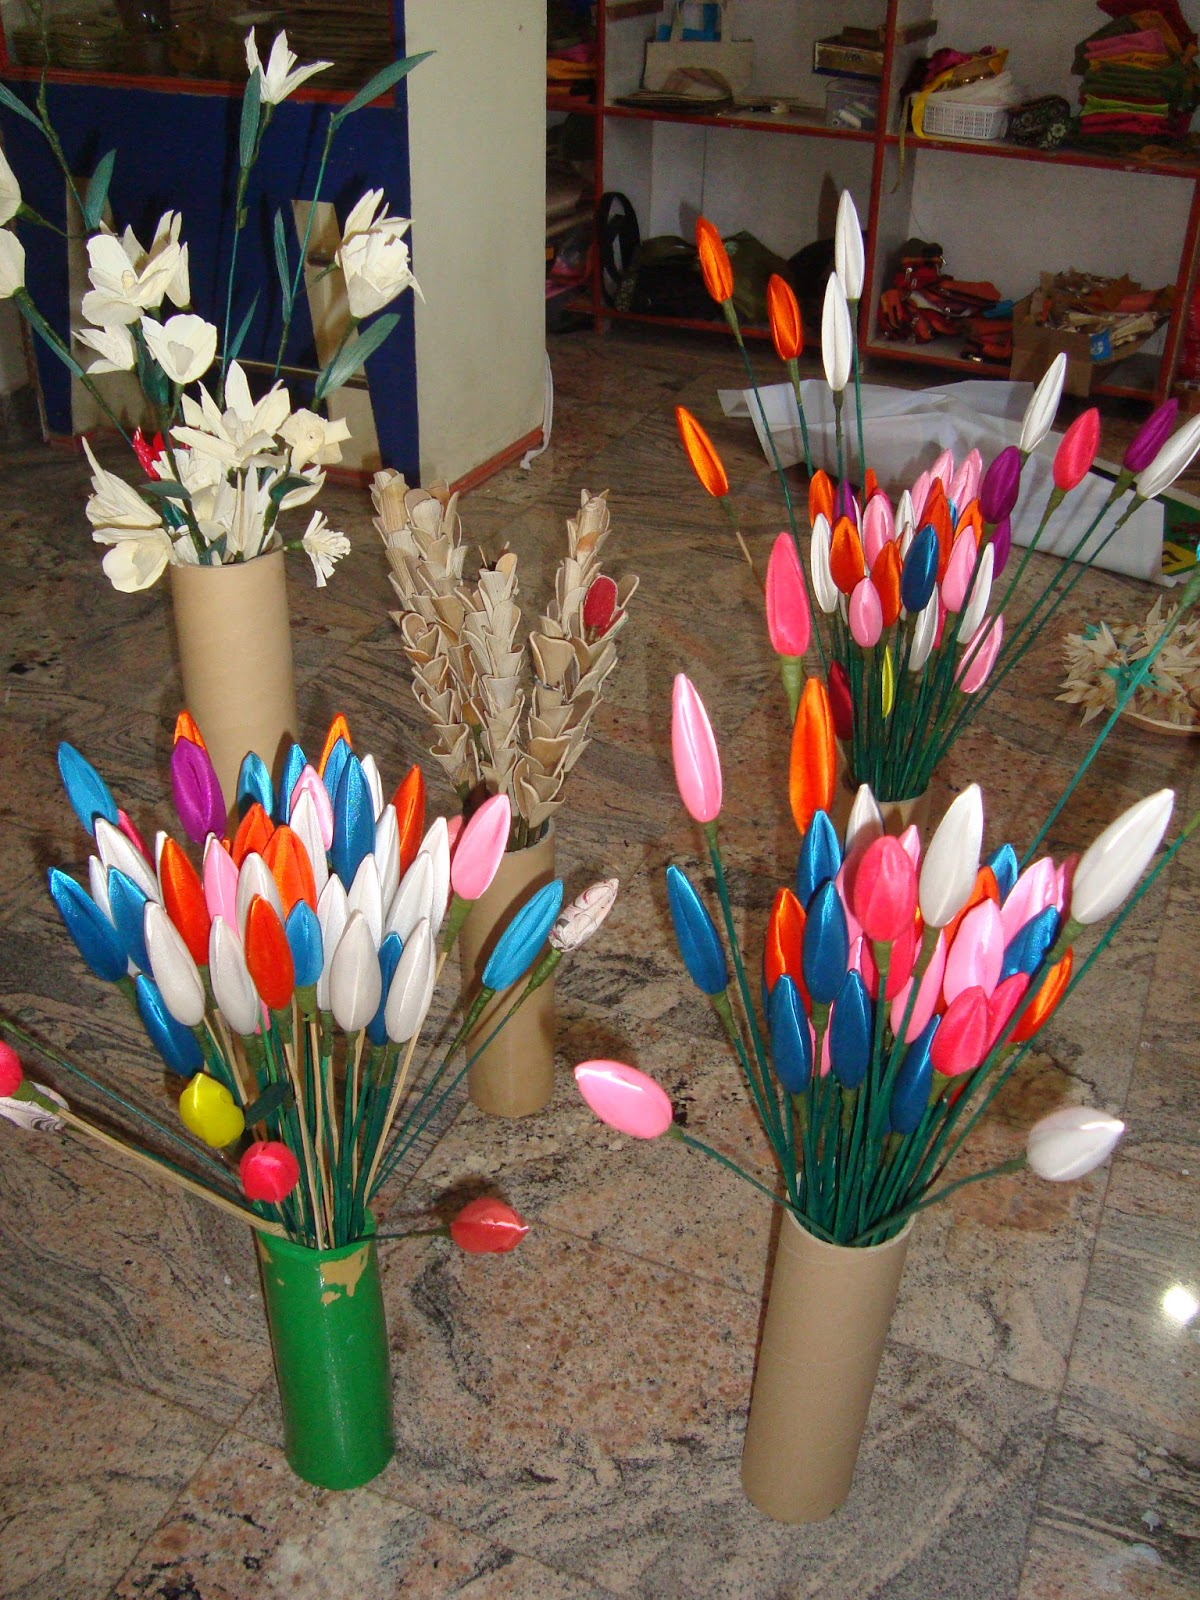 Crafts work by using waste material of flowets for Waste crafts making